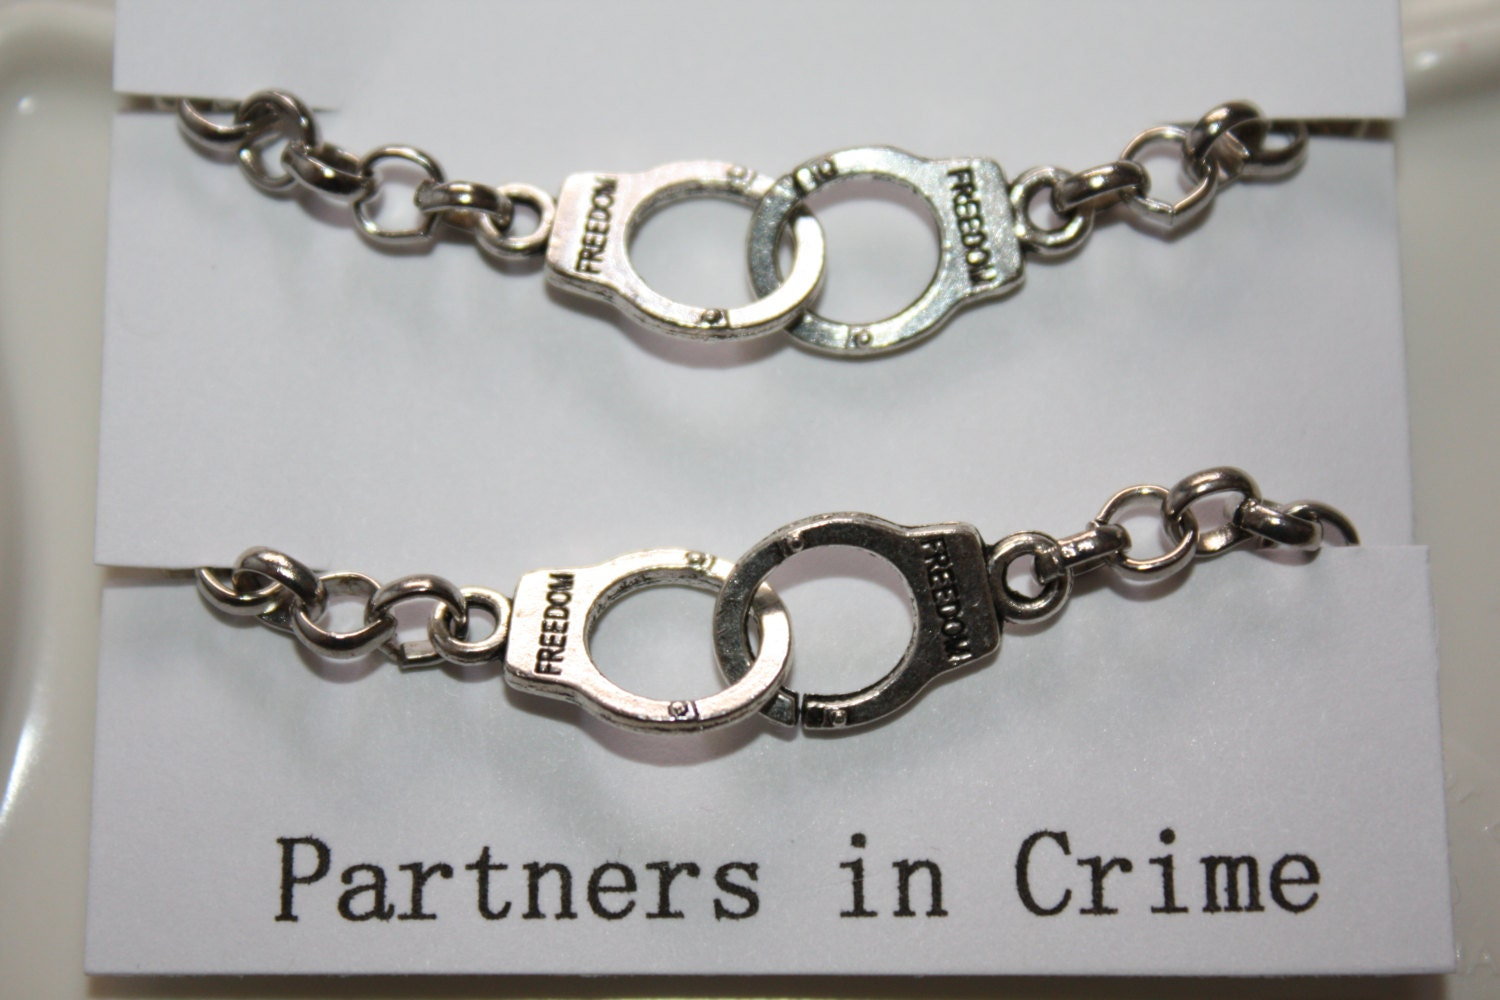 partners in crime handcuff bracelet best friend jewelry